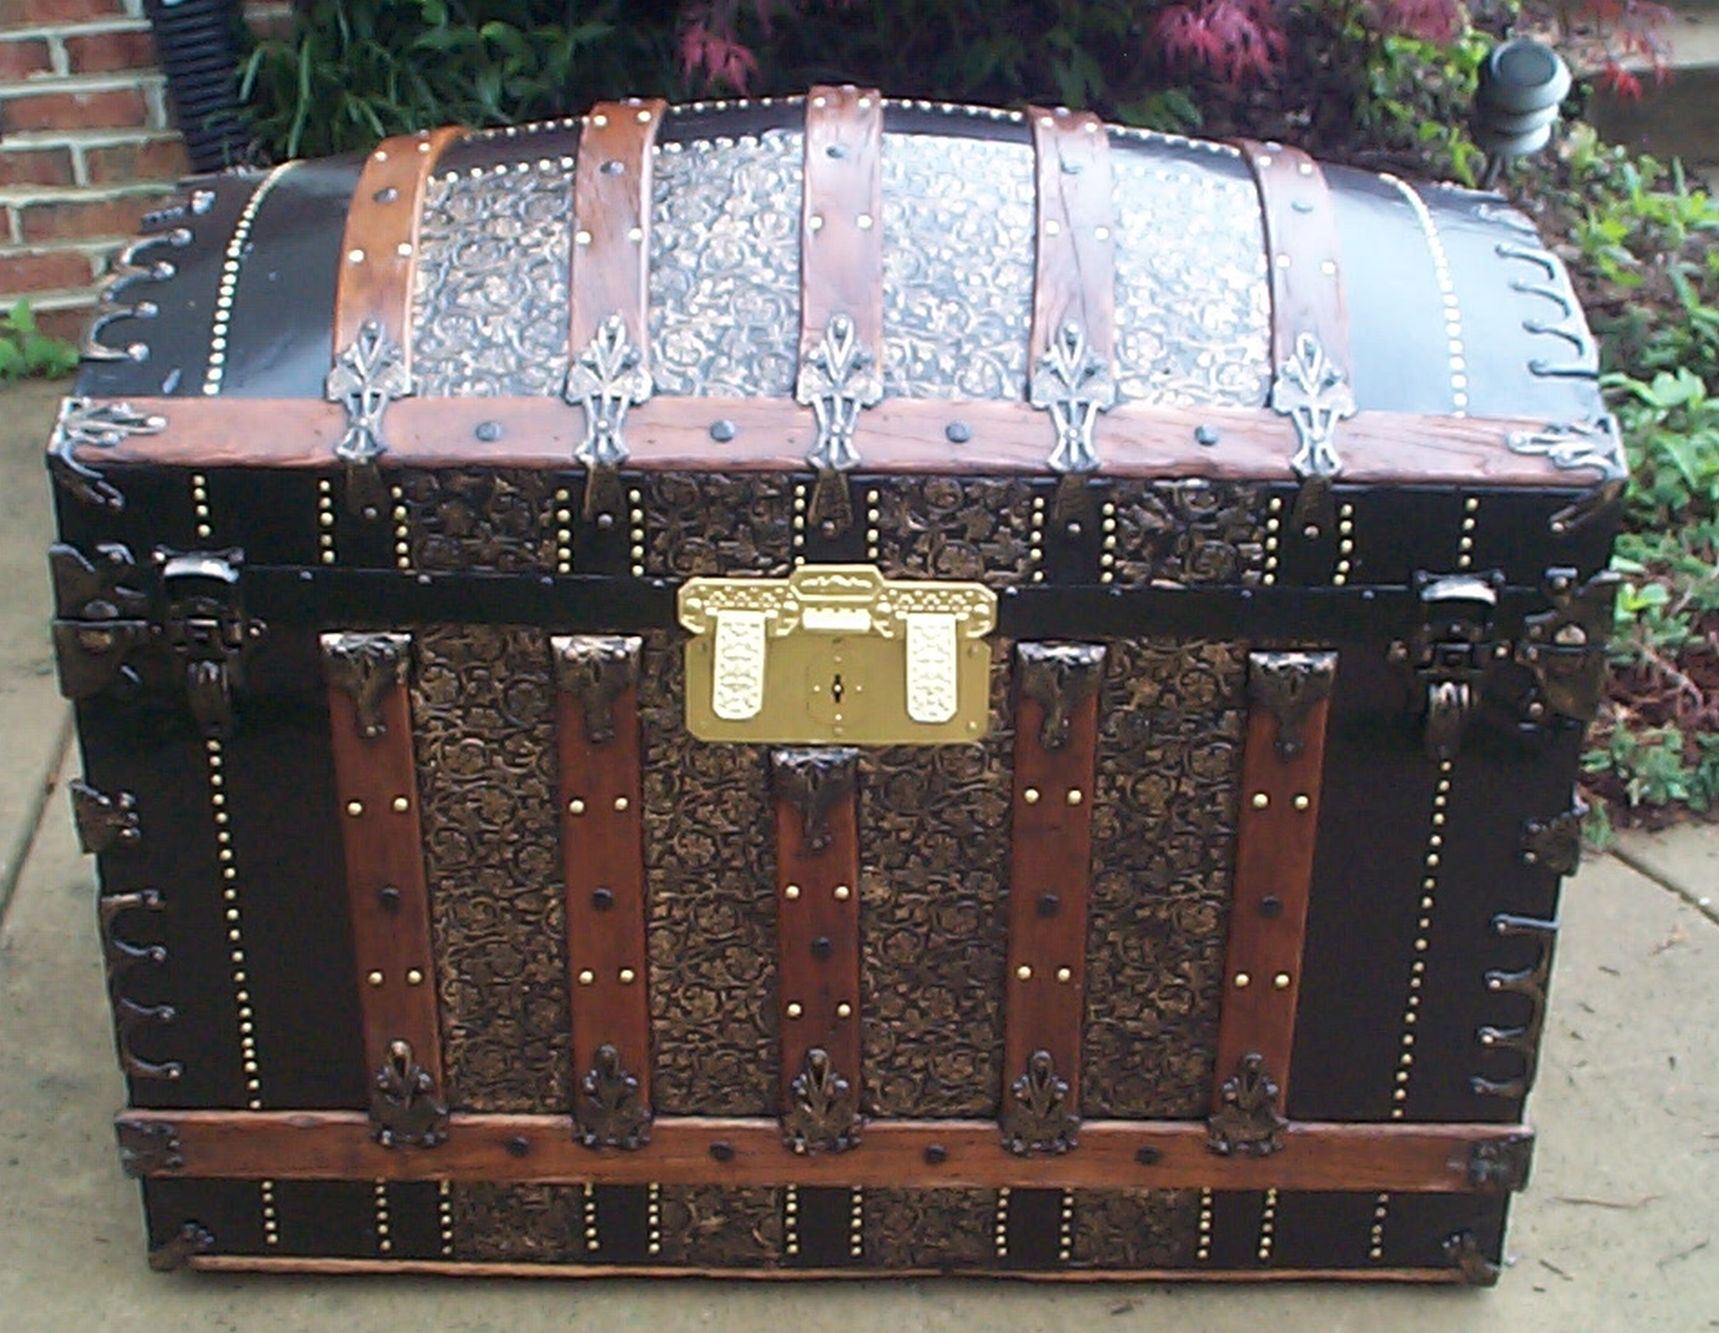 Edwardian (1901-1910) Antiques Strict Large Antique Black Japanned Tin Cabin Trunk